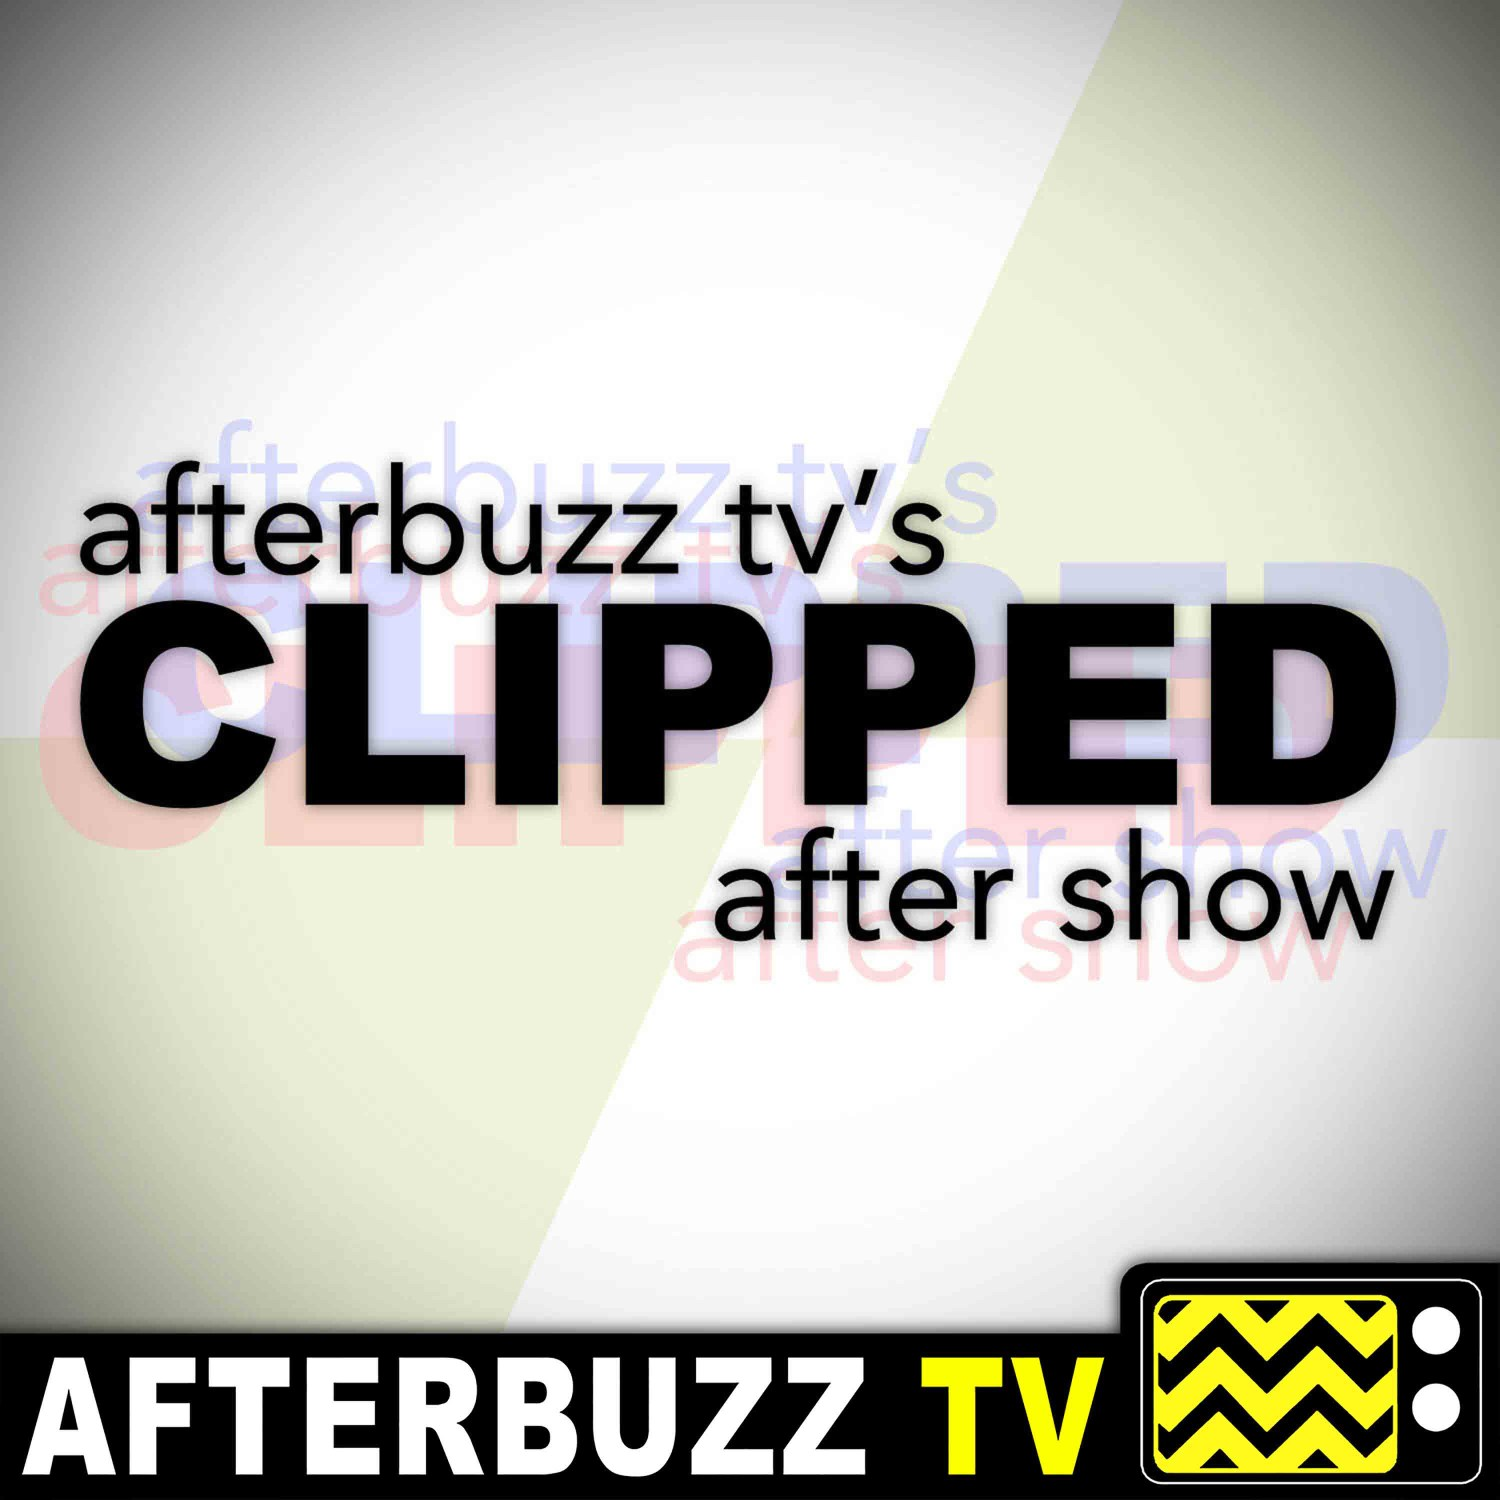 Clipped Reviews and After Show - AfterBuzz TV